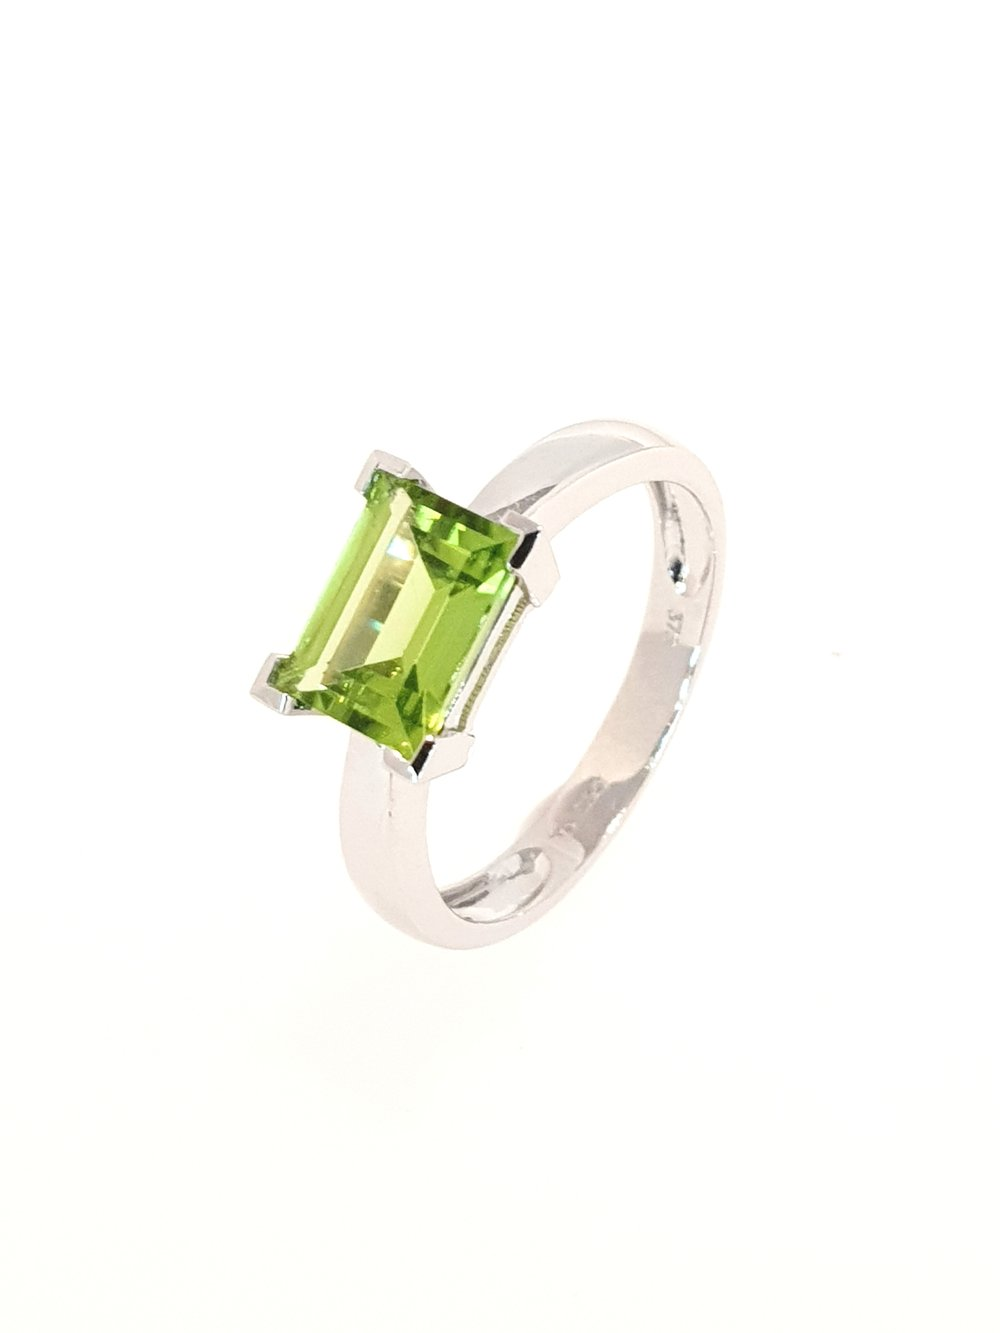 9ct White Gold Peridot Ring  Stock Code: G1962  £360